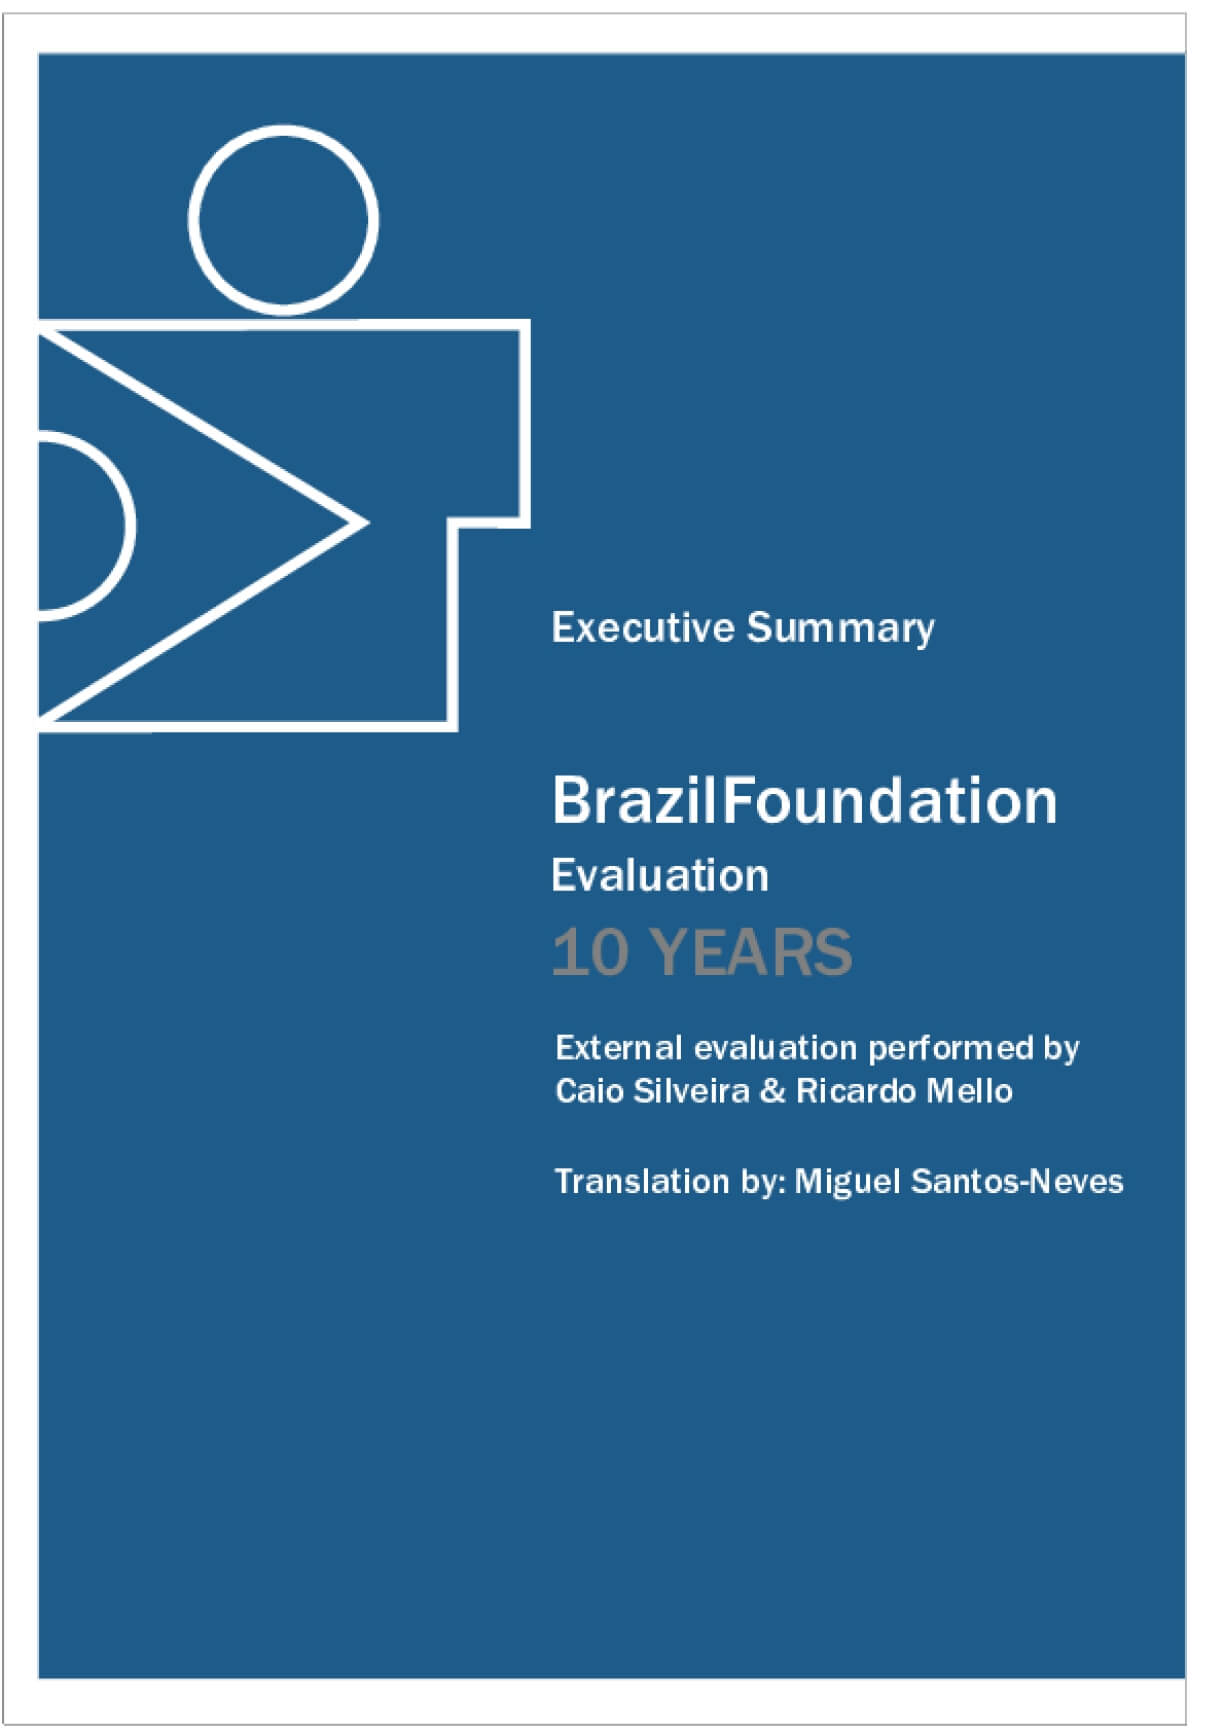 Brazil Foundation 10 Years